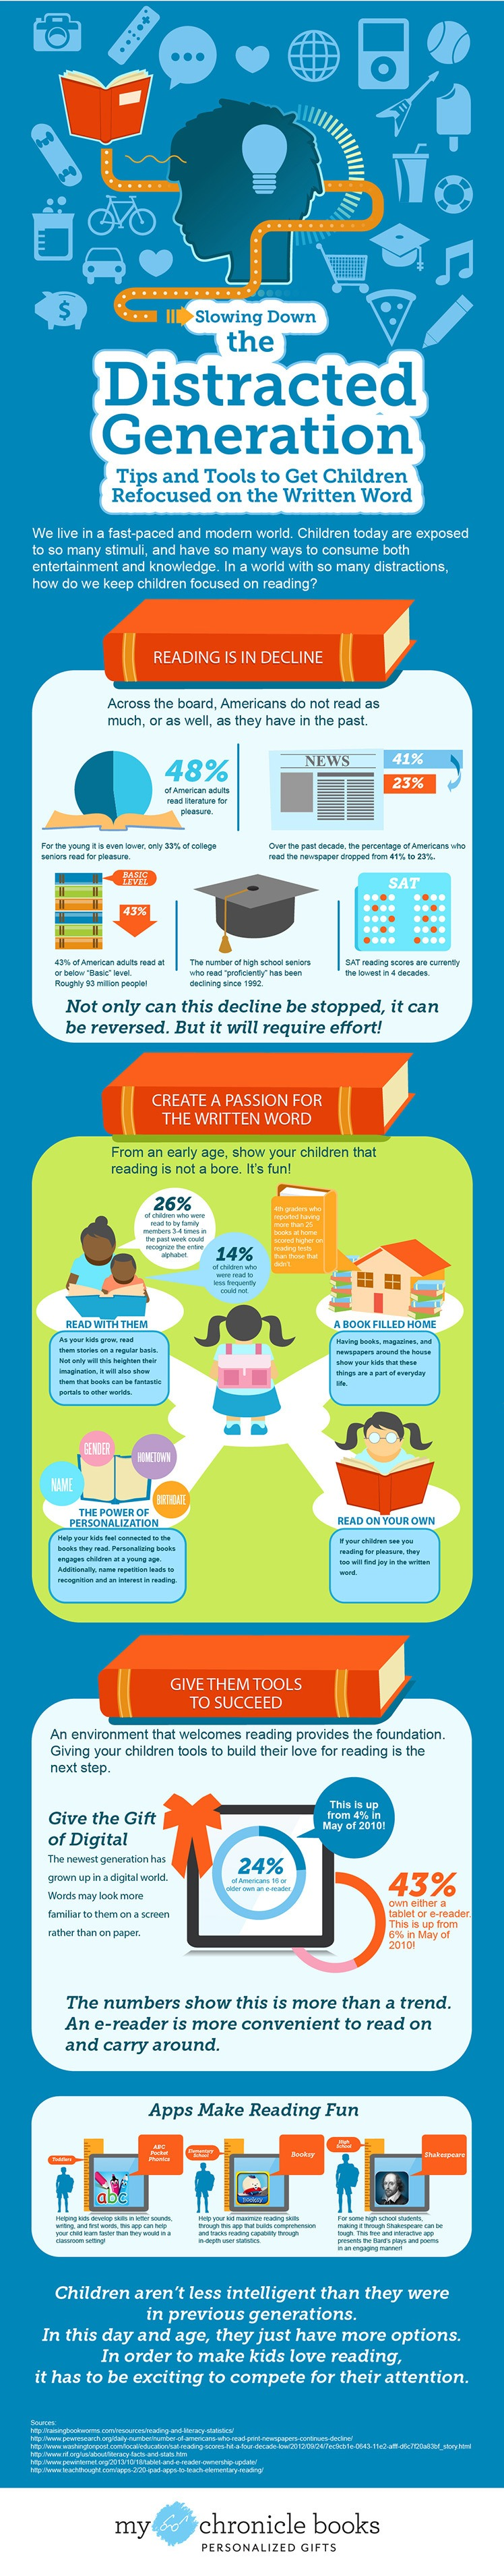 The Distracted Generation Infographic